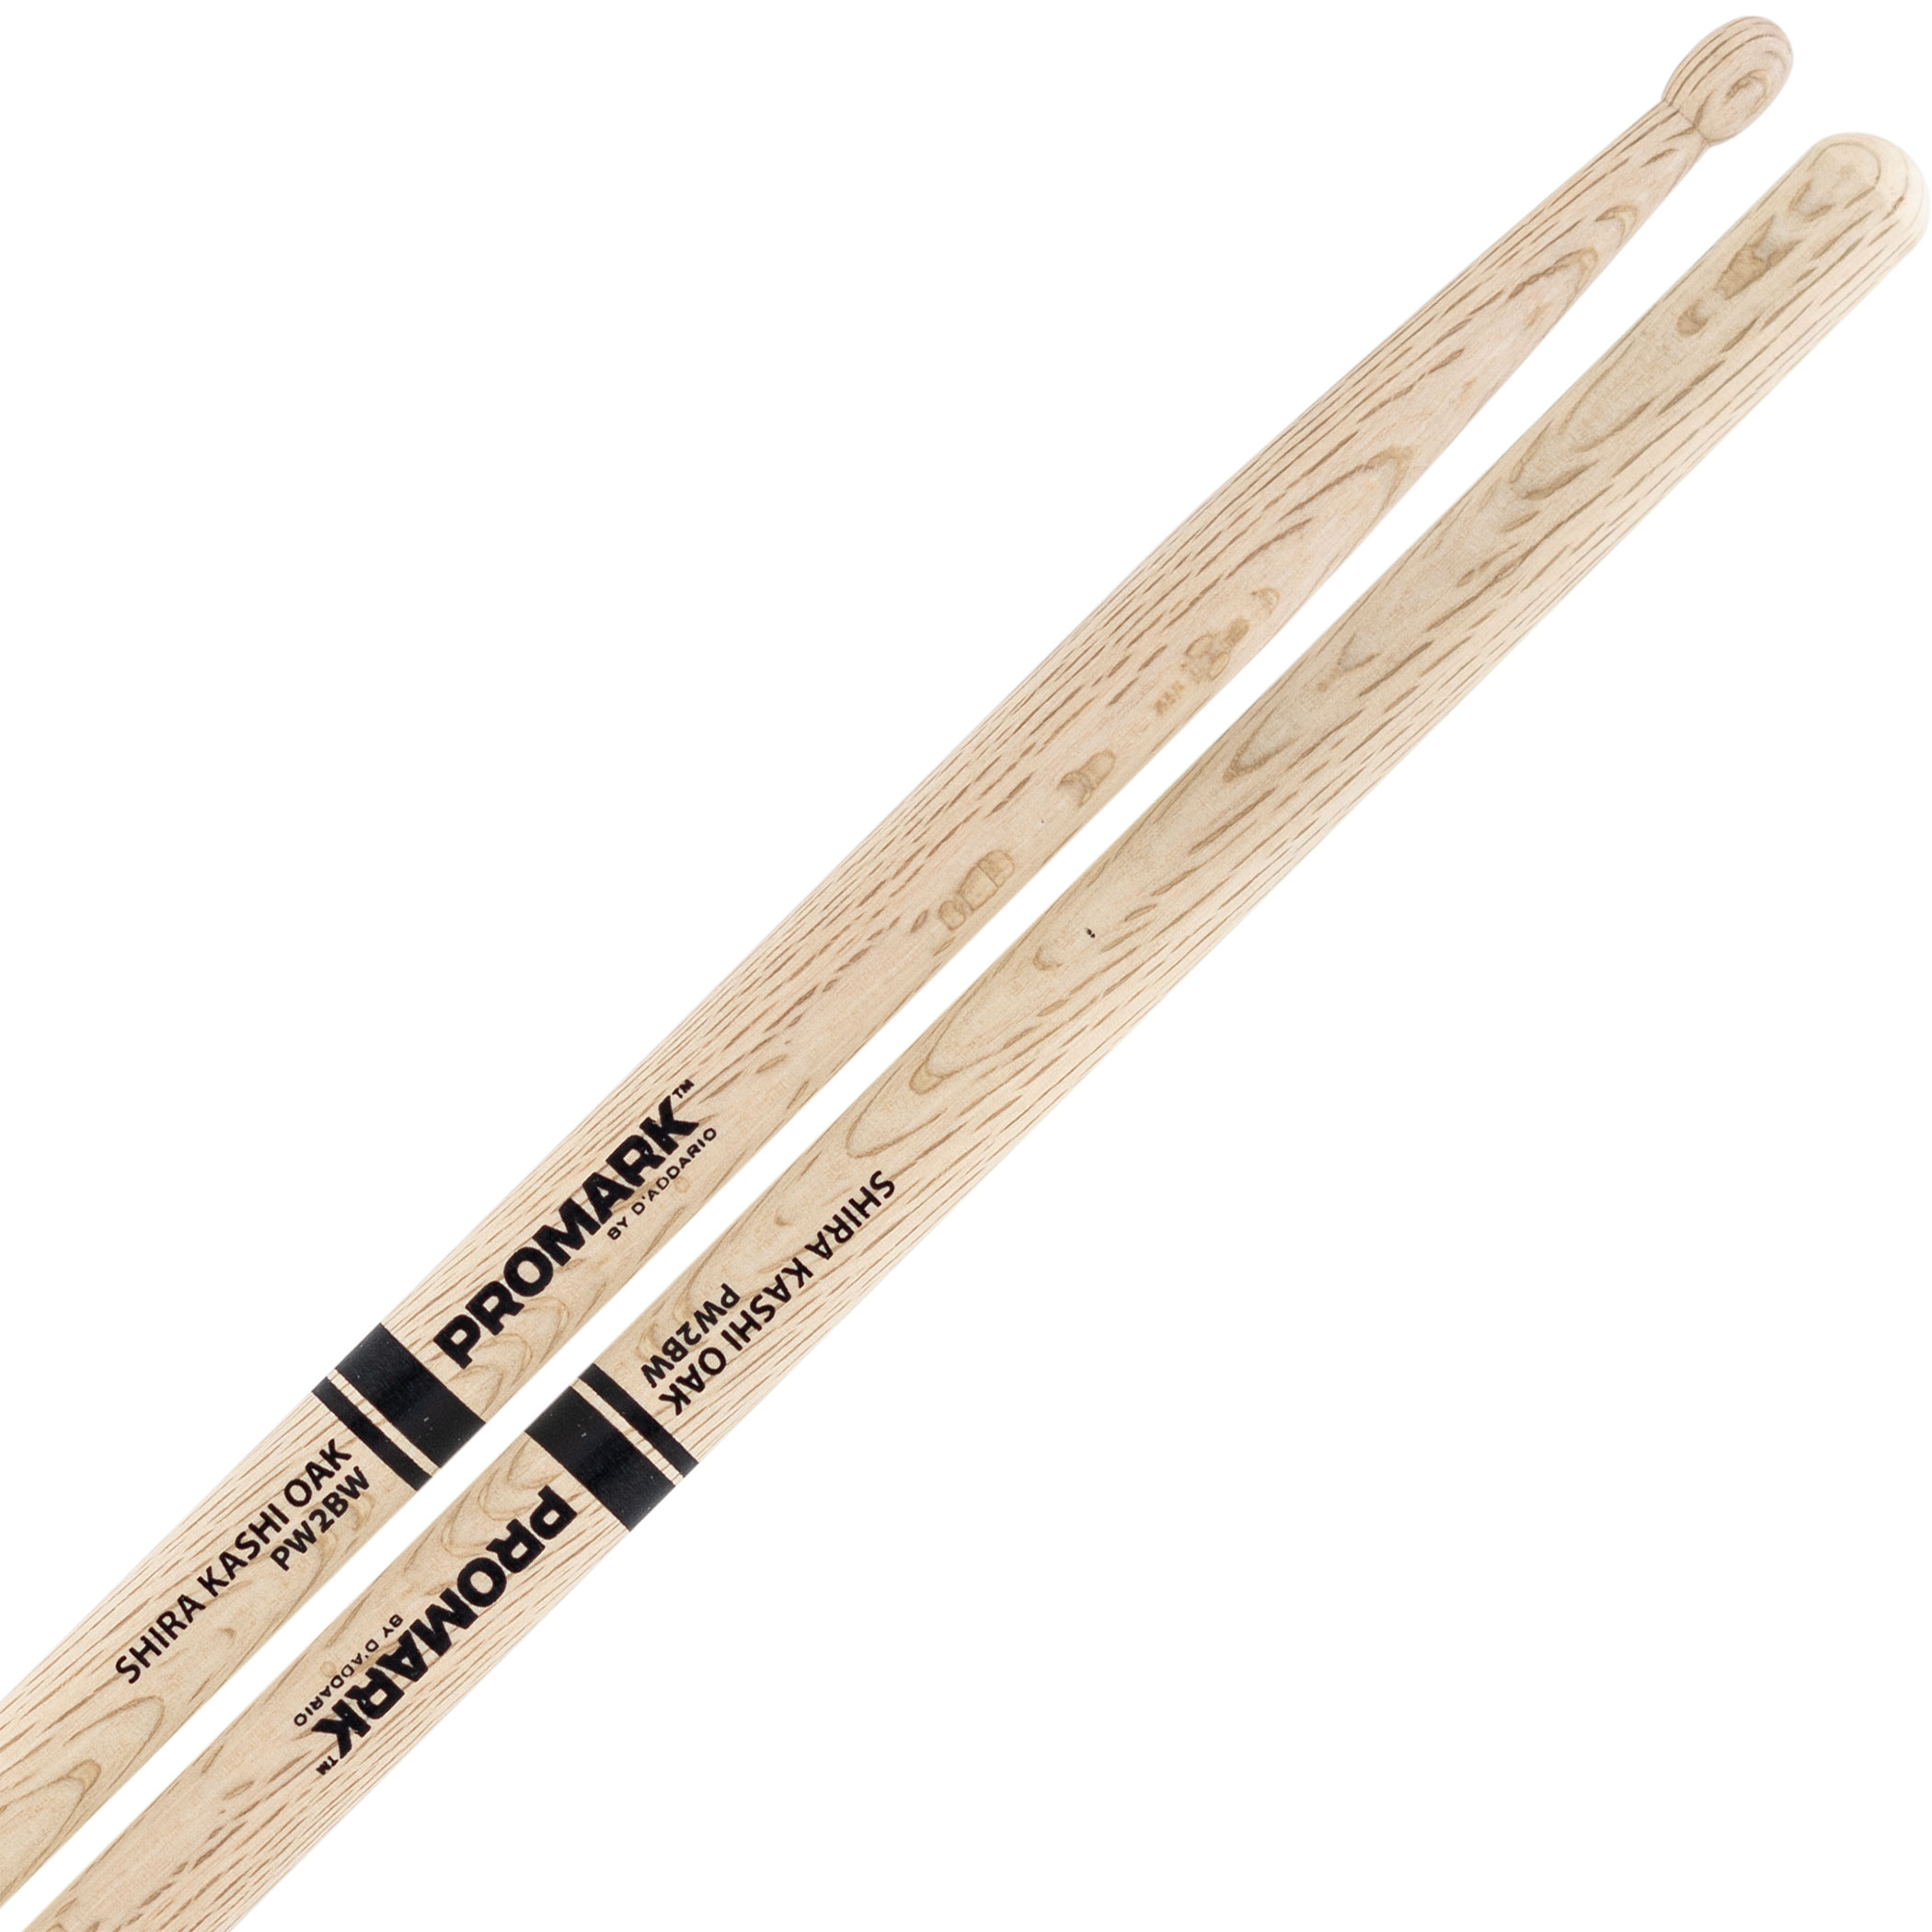 Promark Shira Kashi Oak 2B Wood Tip Drumsticks